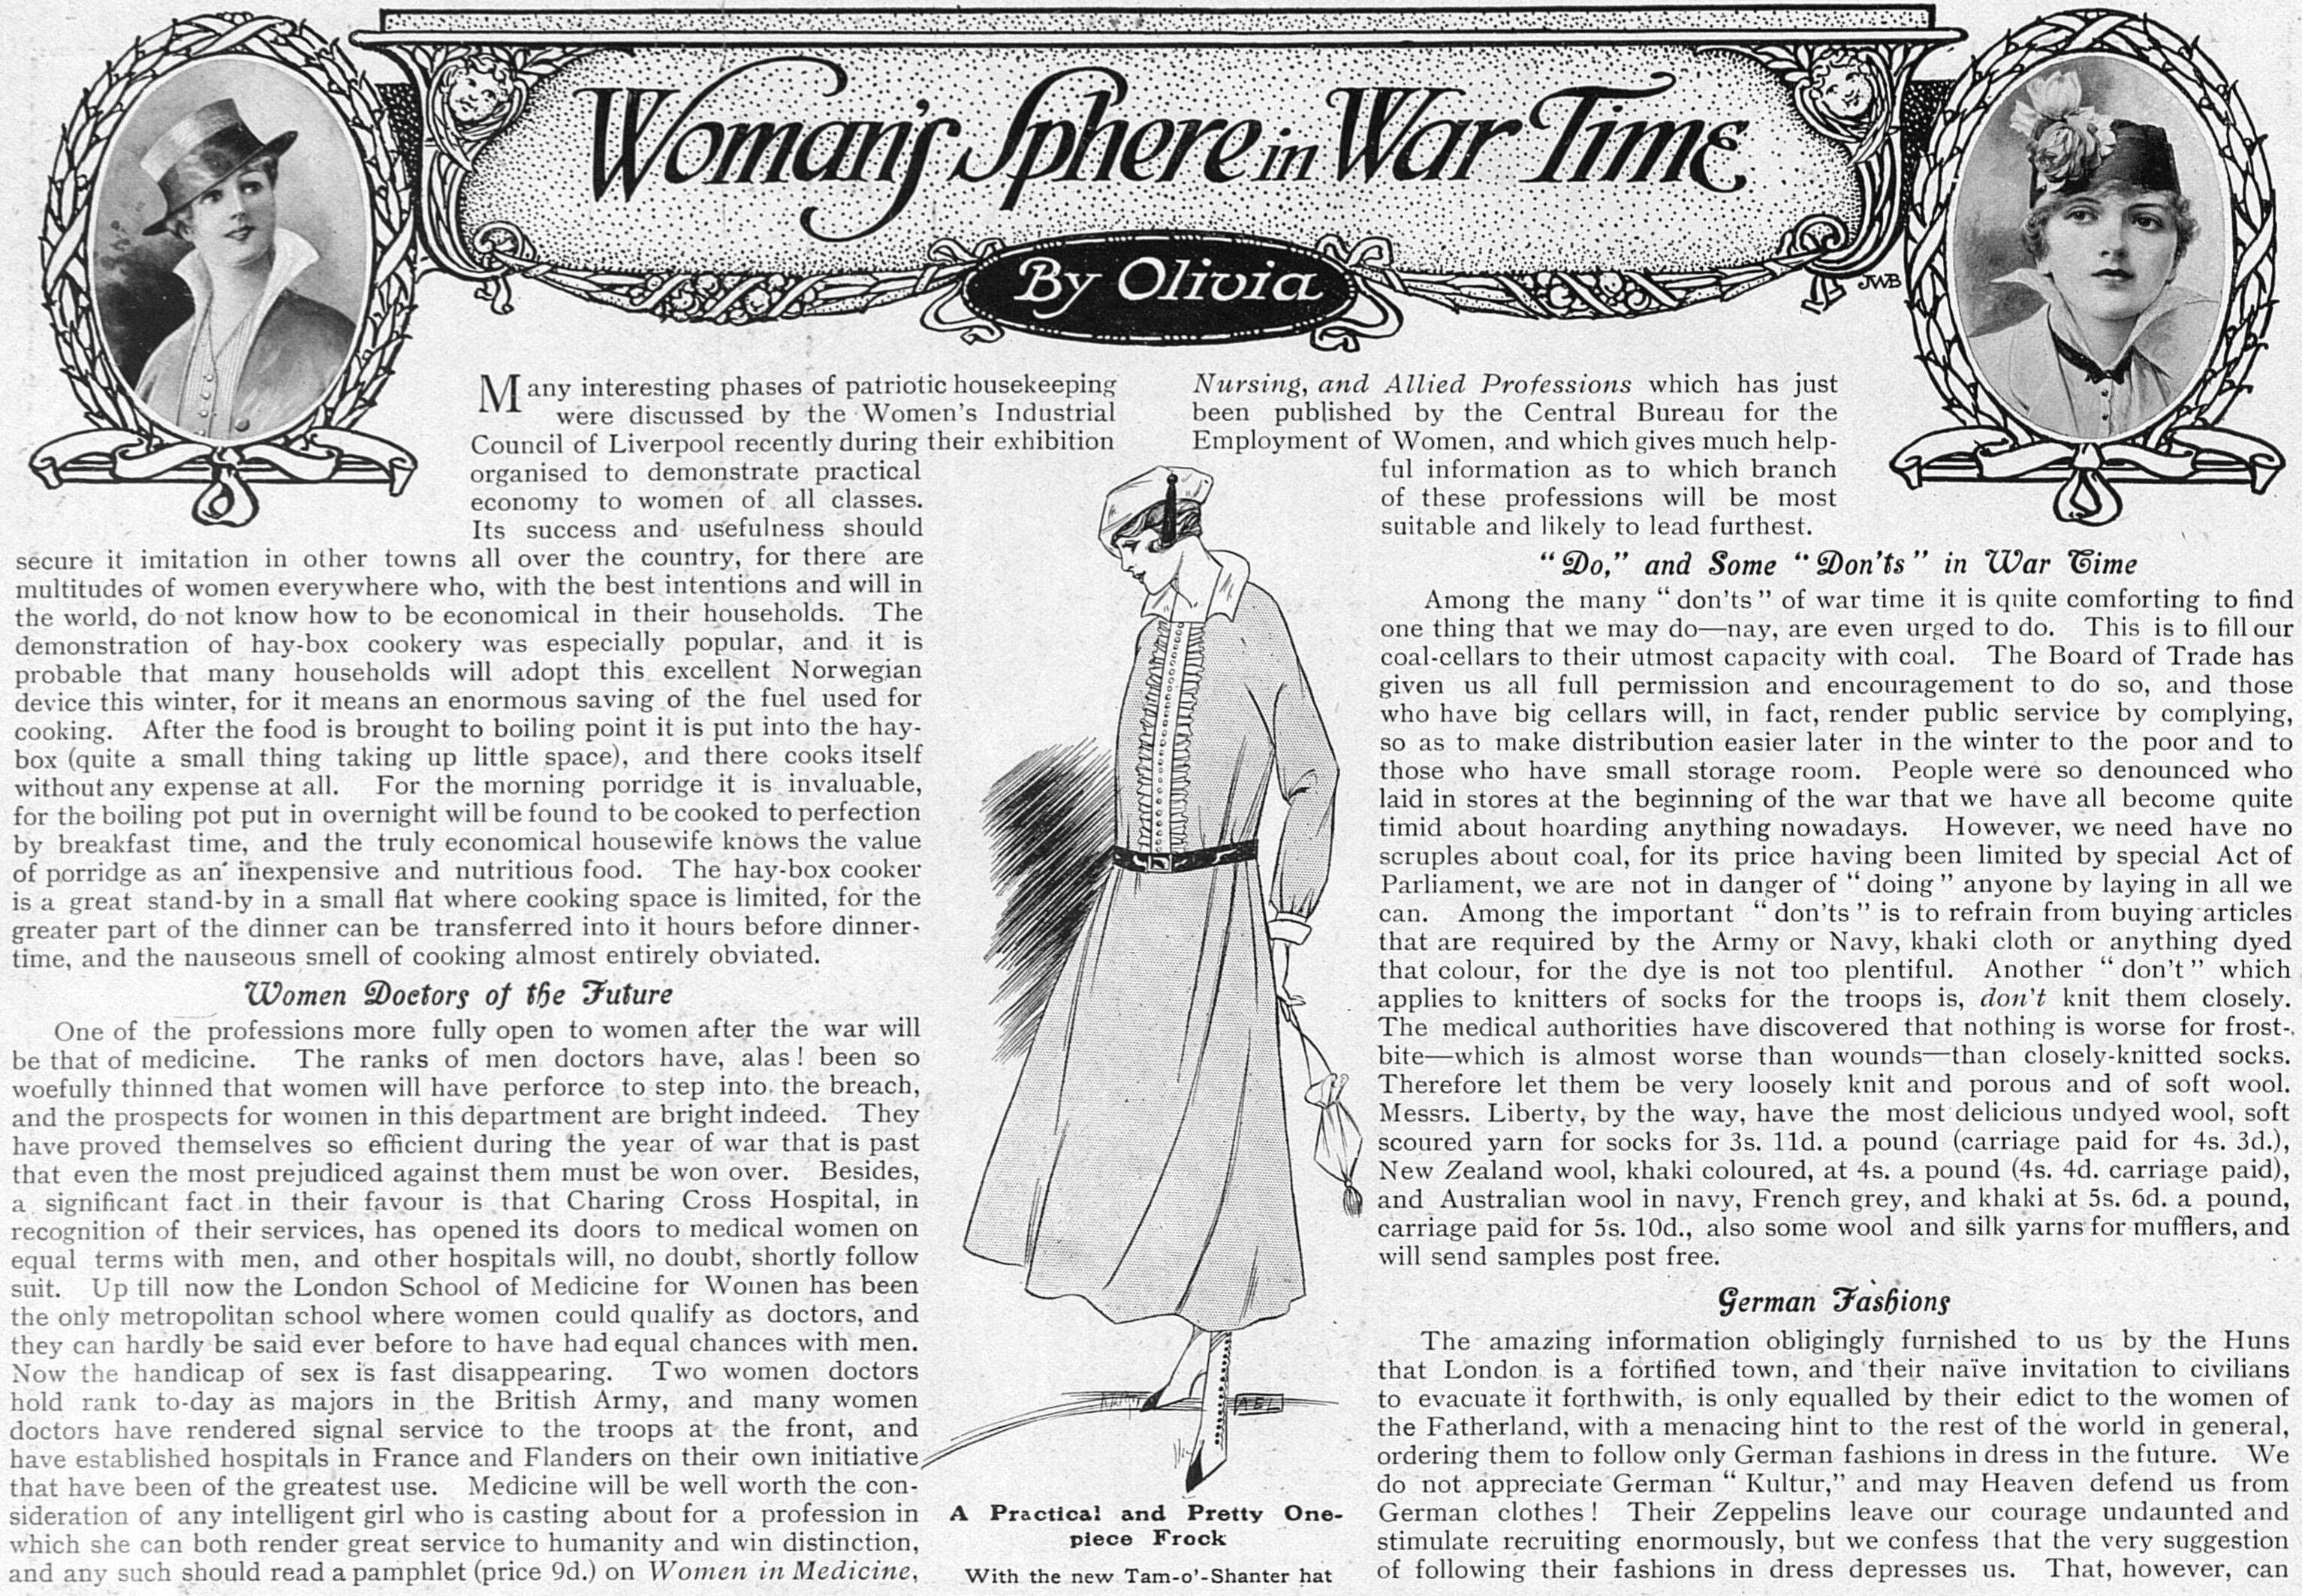 WomansSphereInWarTime_2Oct1915